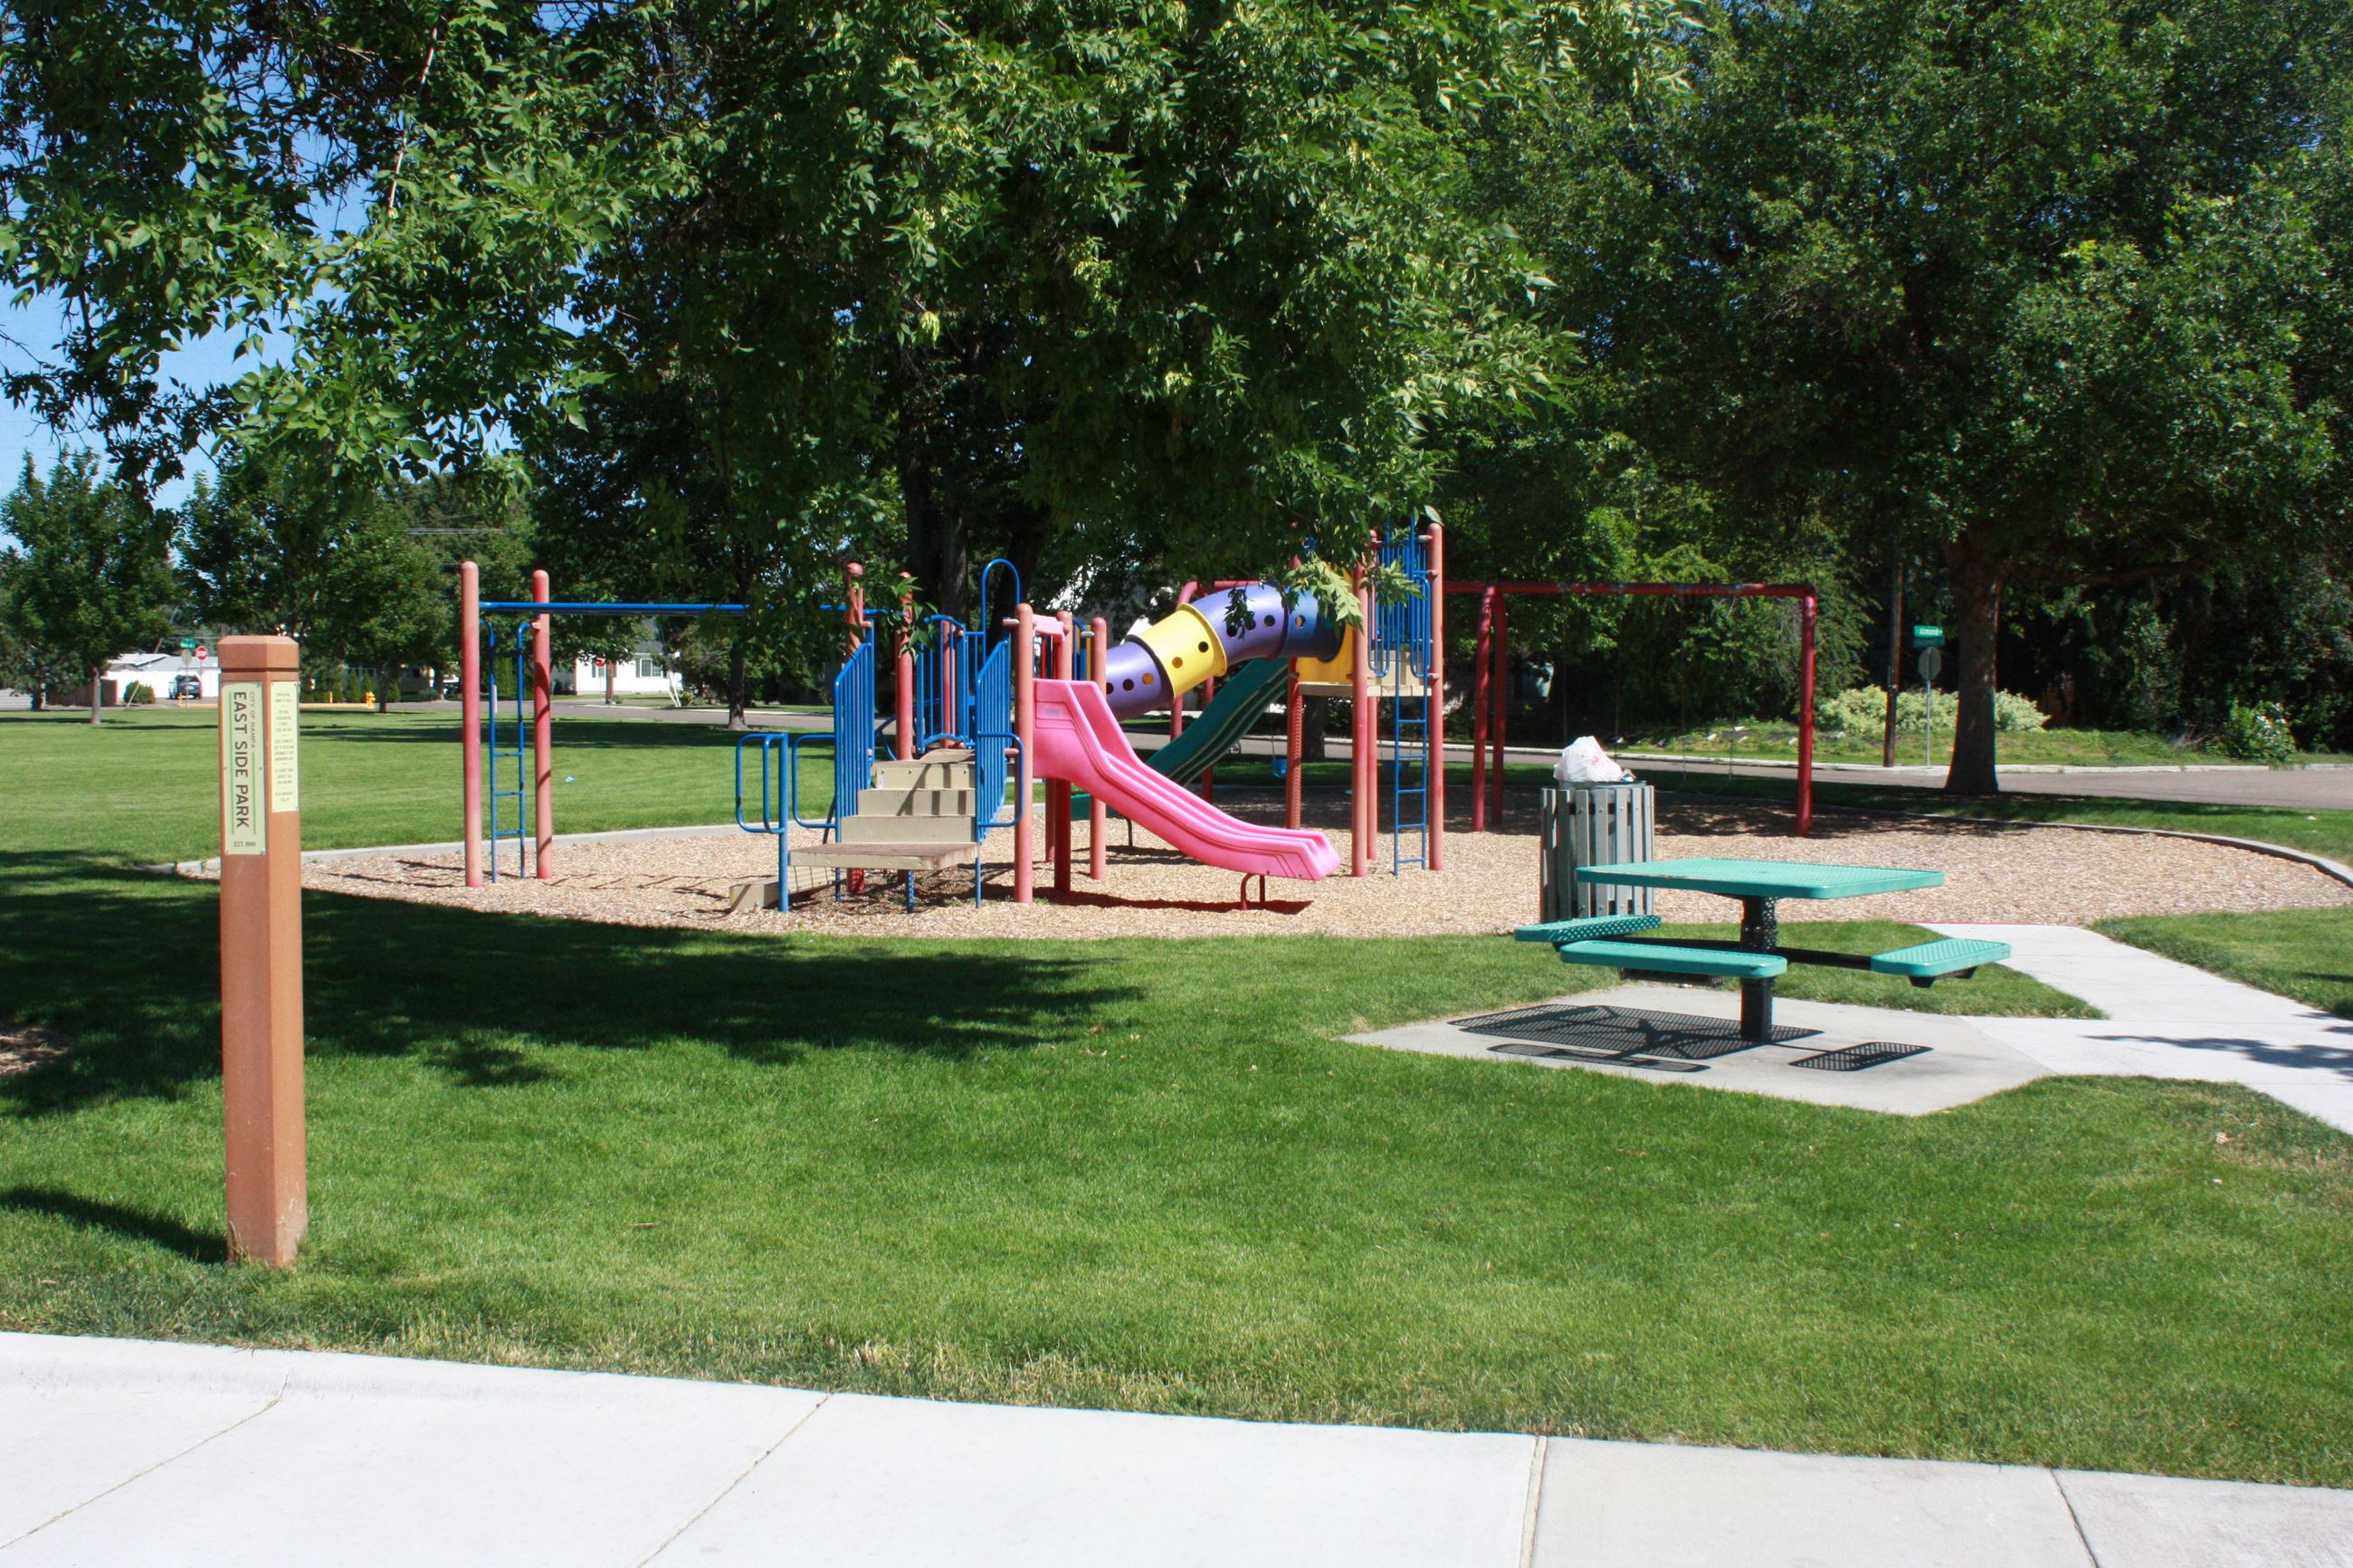 Multicolored play structure with small green picnic table on the side